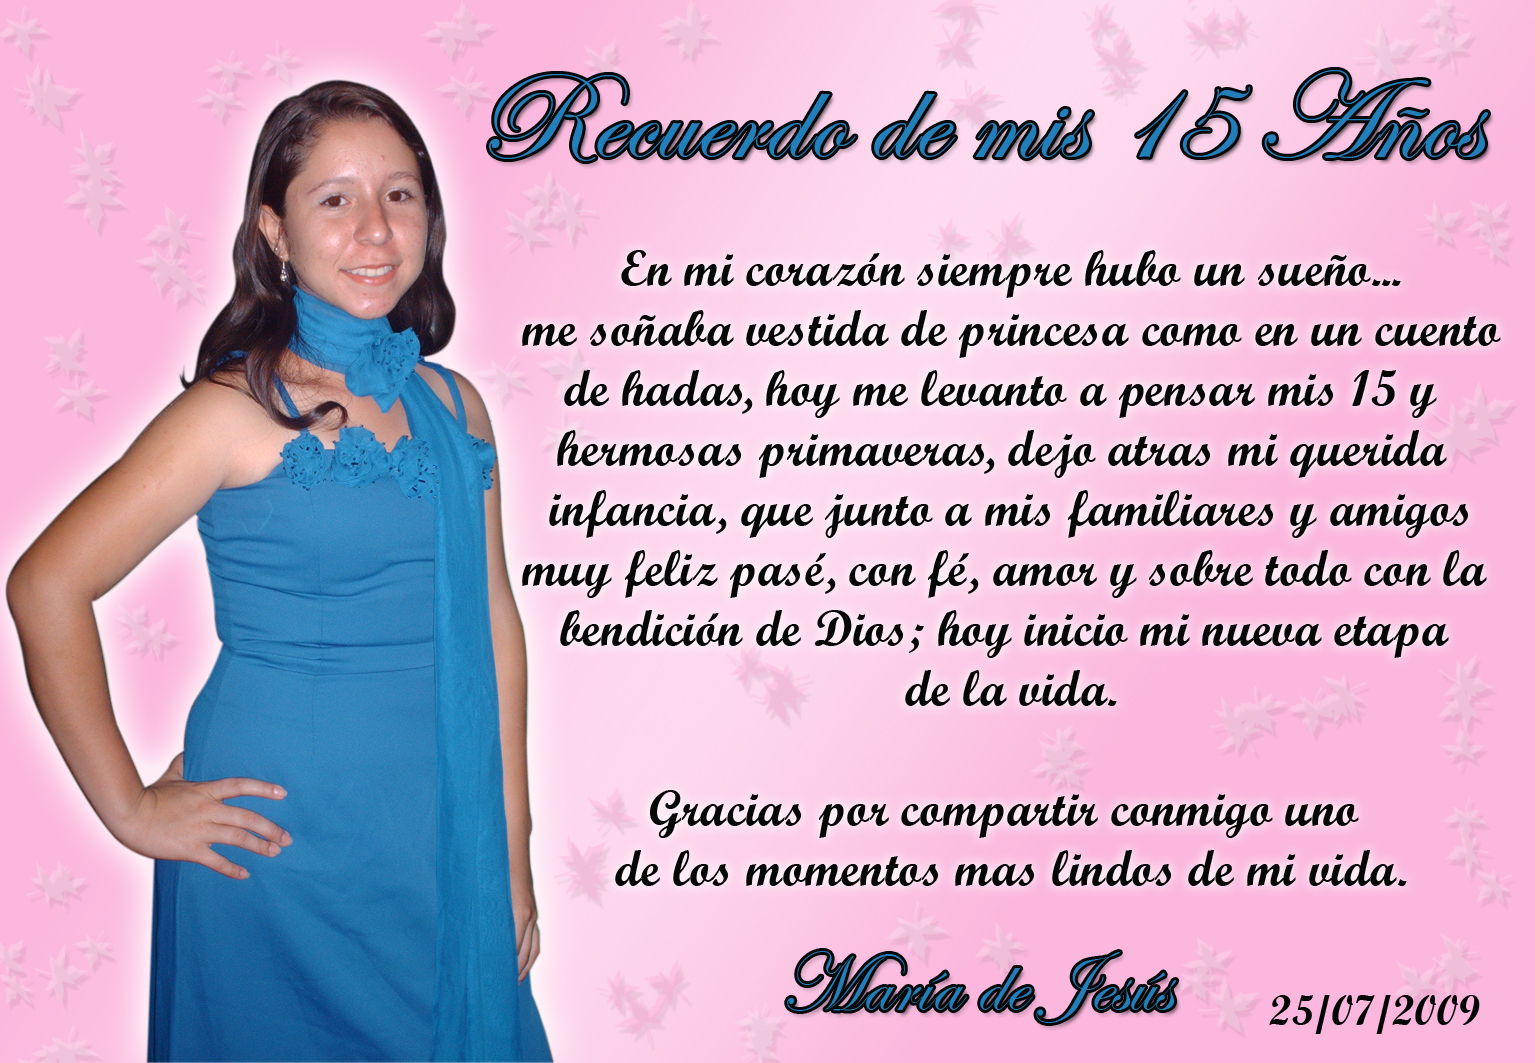 Pin Invitacion A Novenario De Misa Por Difunto Wallpapers Real ...